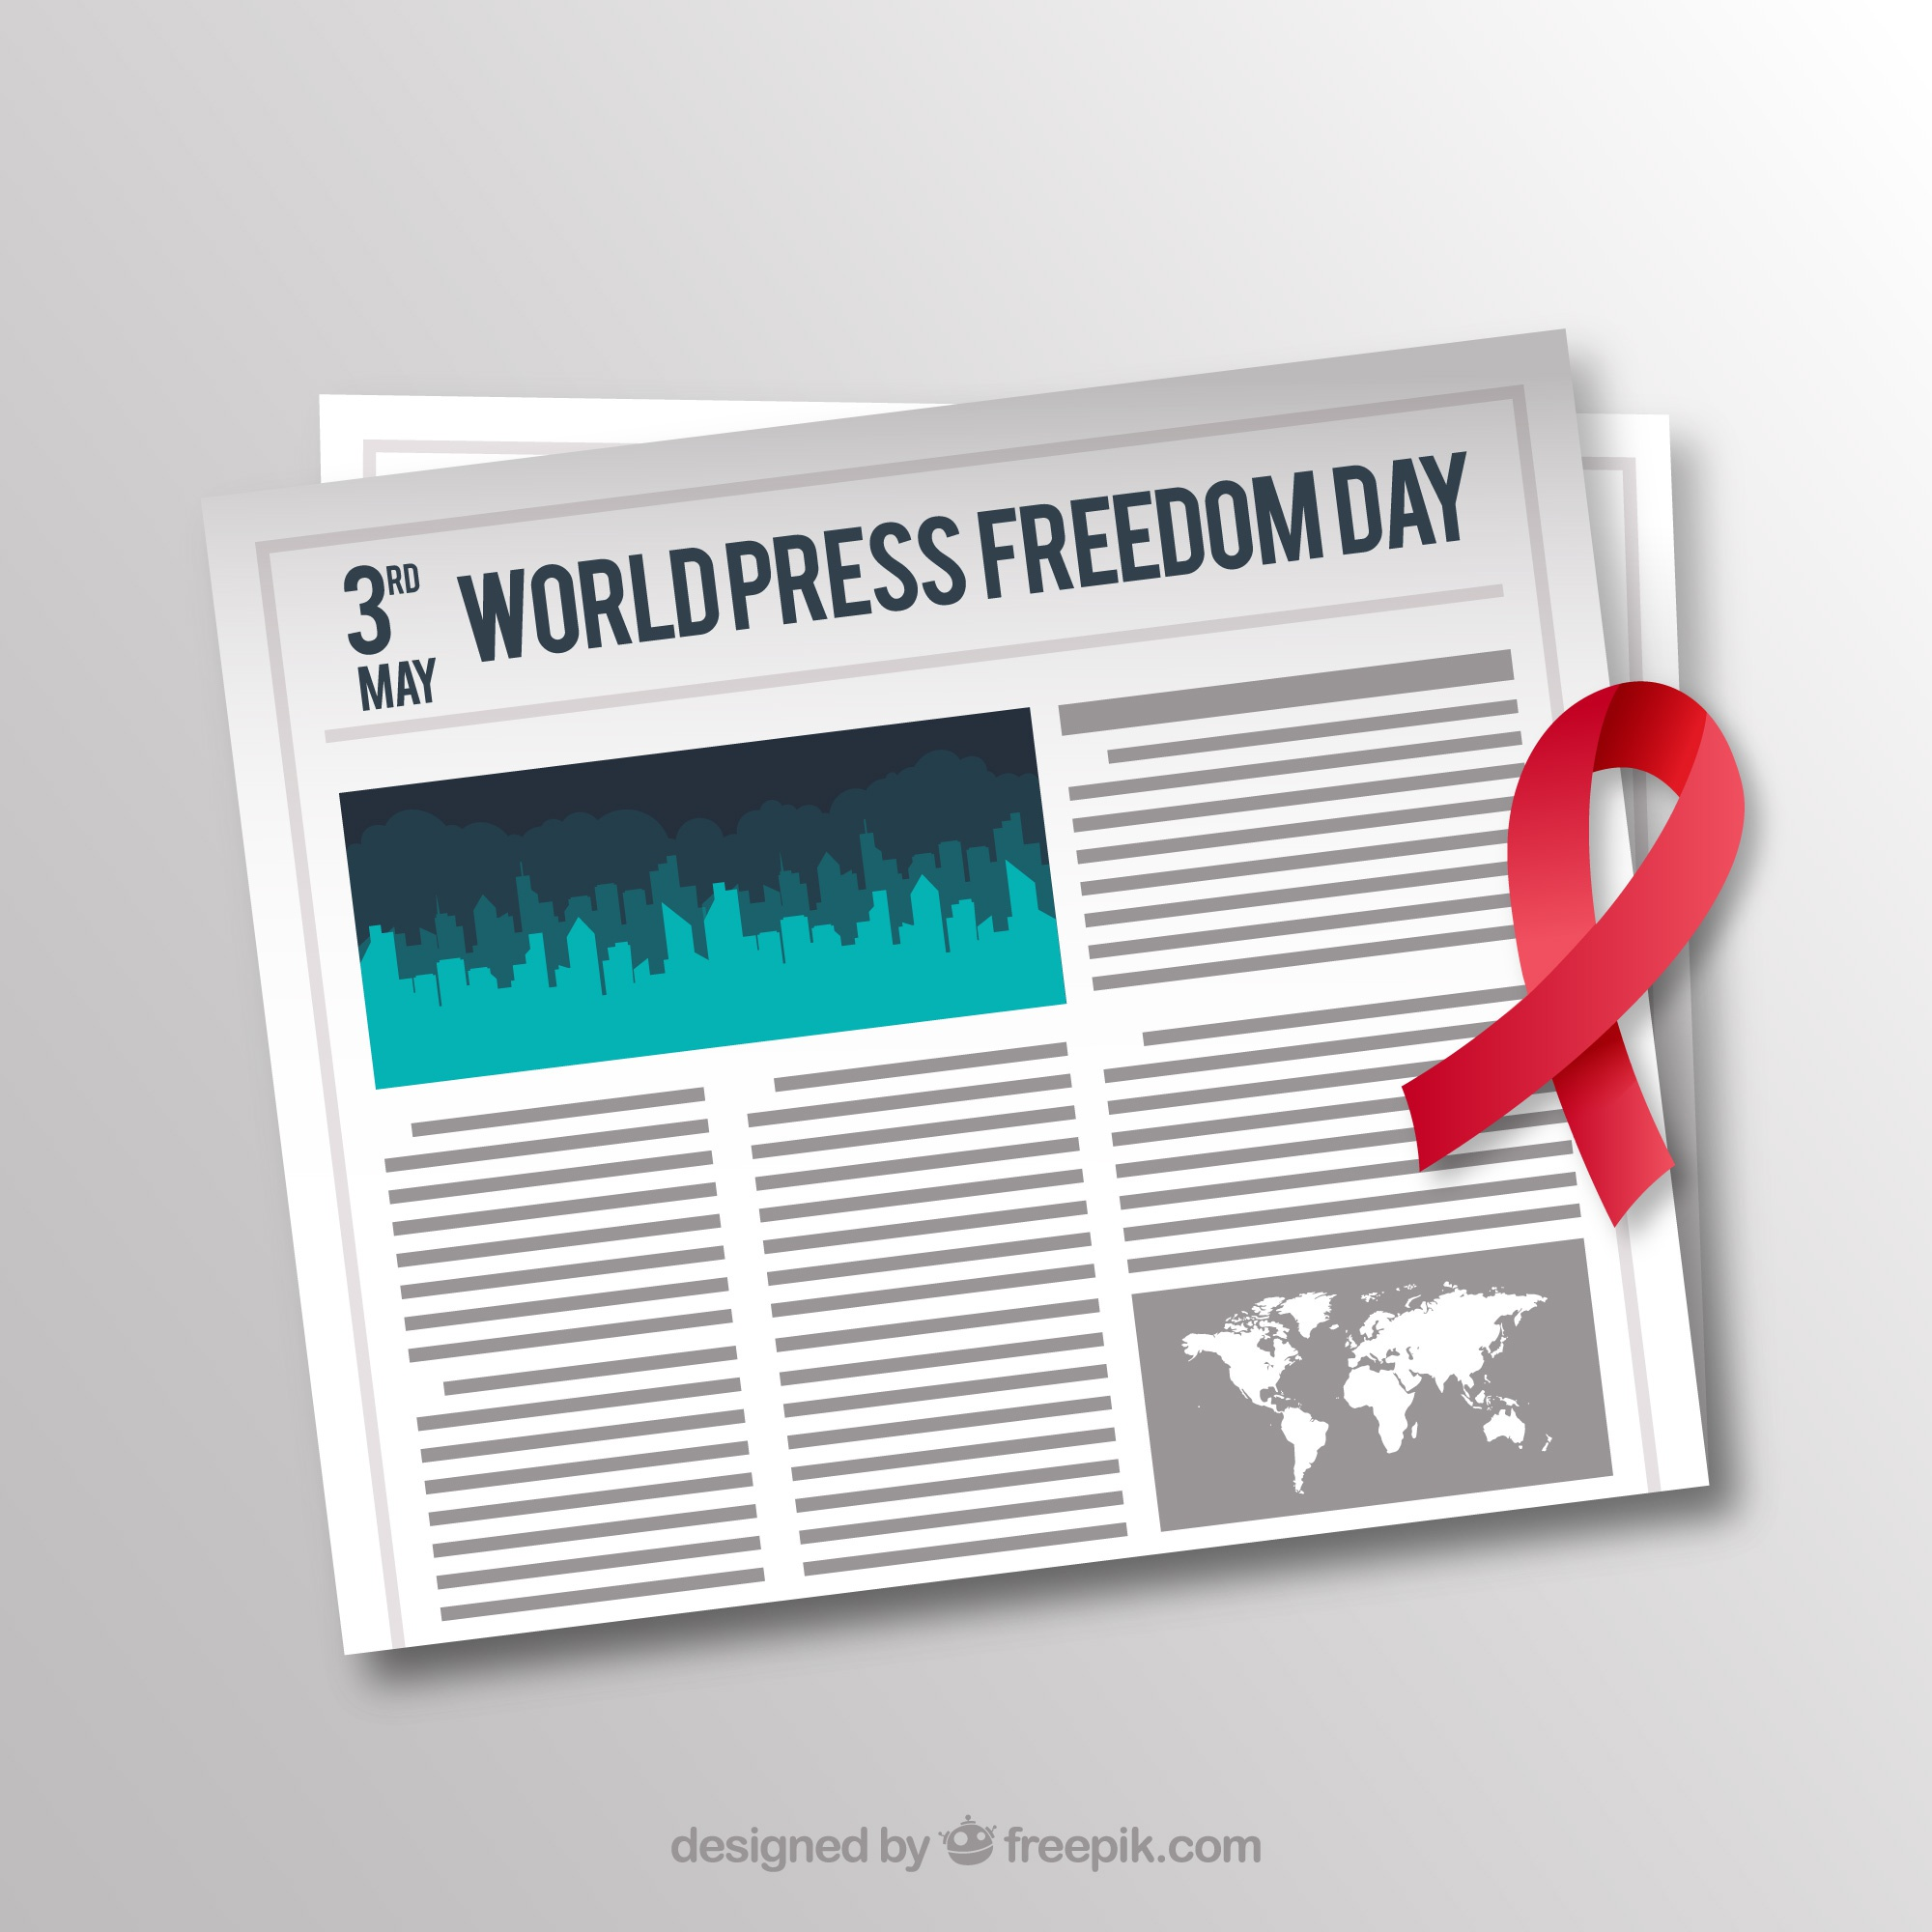 Newspaper background with red ribbon